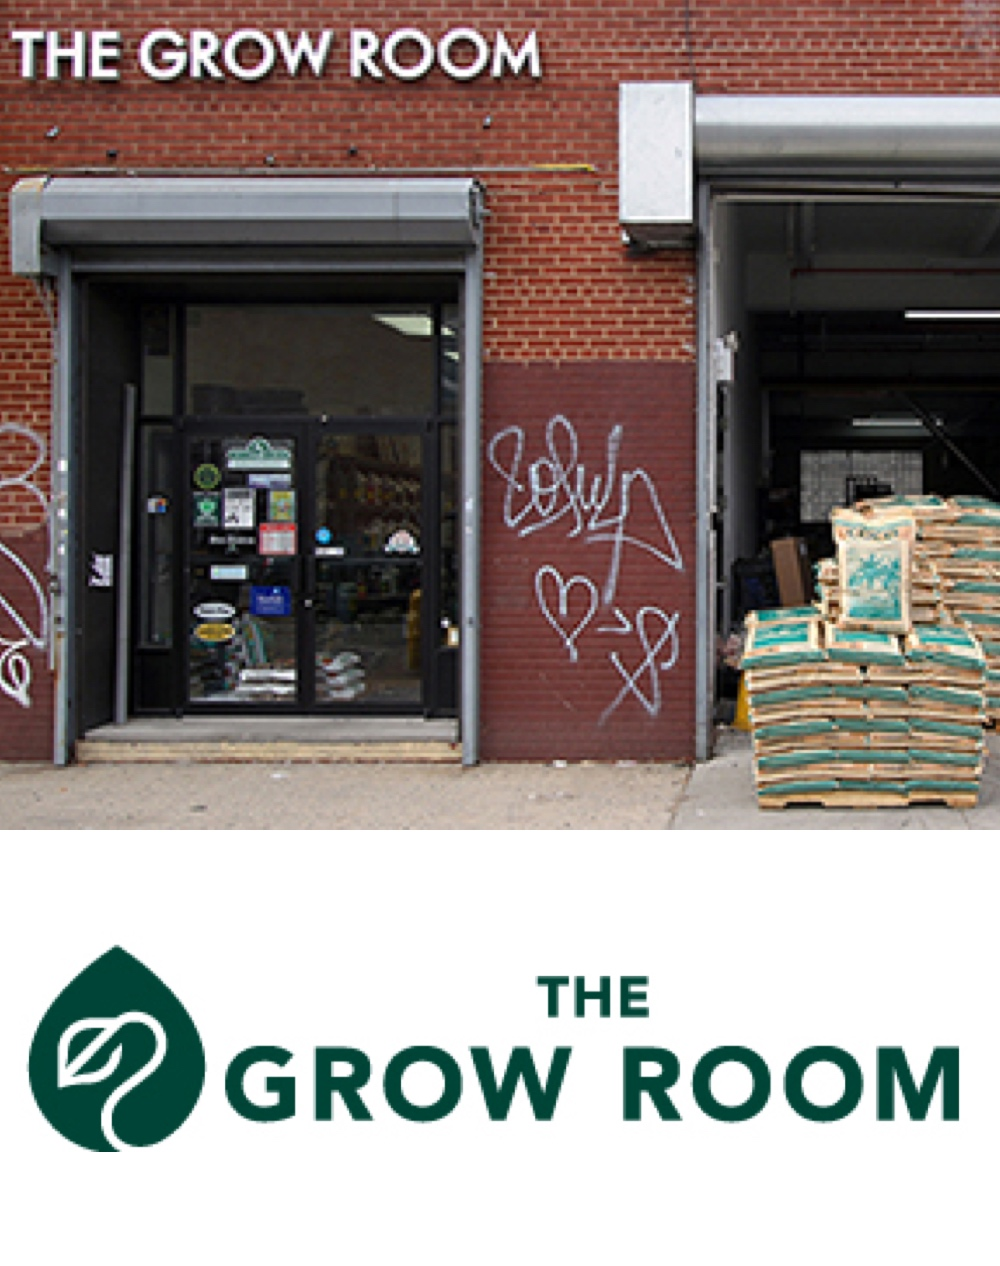 Gardening stores specializing in hydroponics and indoor growing in the New York metropolitan area.  Family-owned and operated for over 20 years.   -